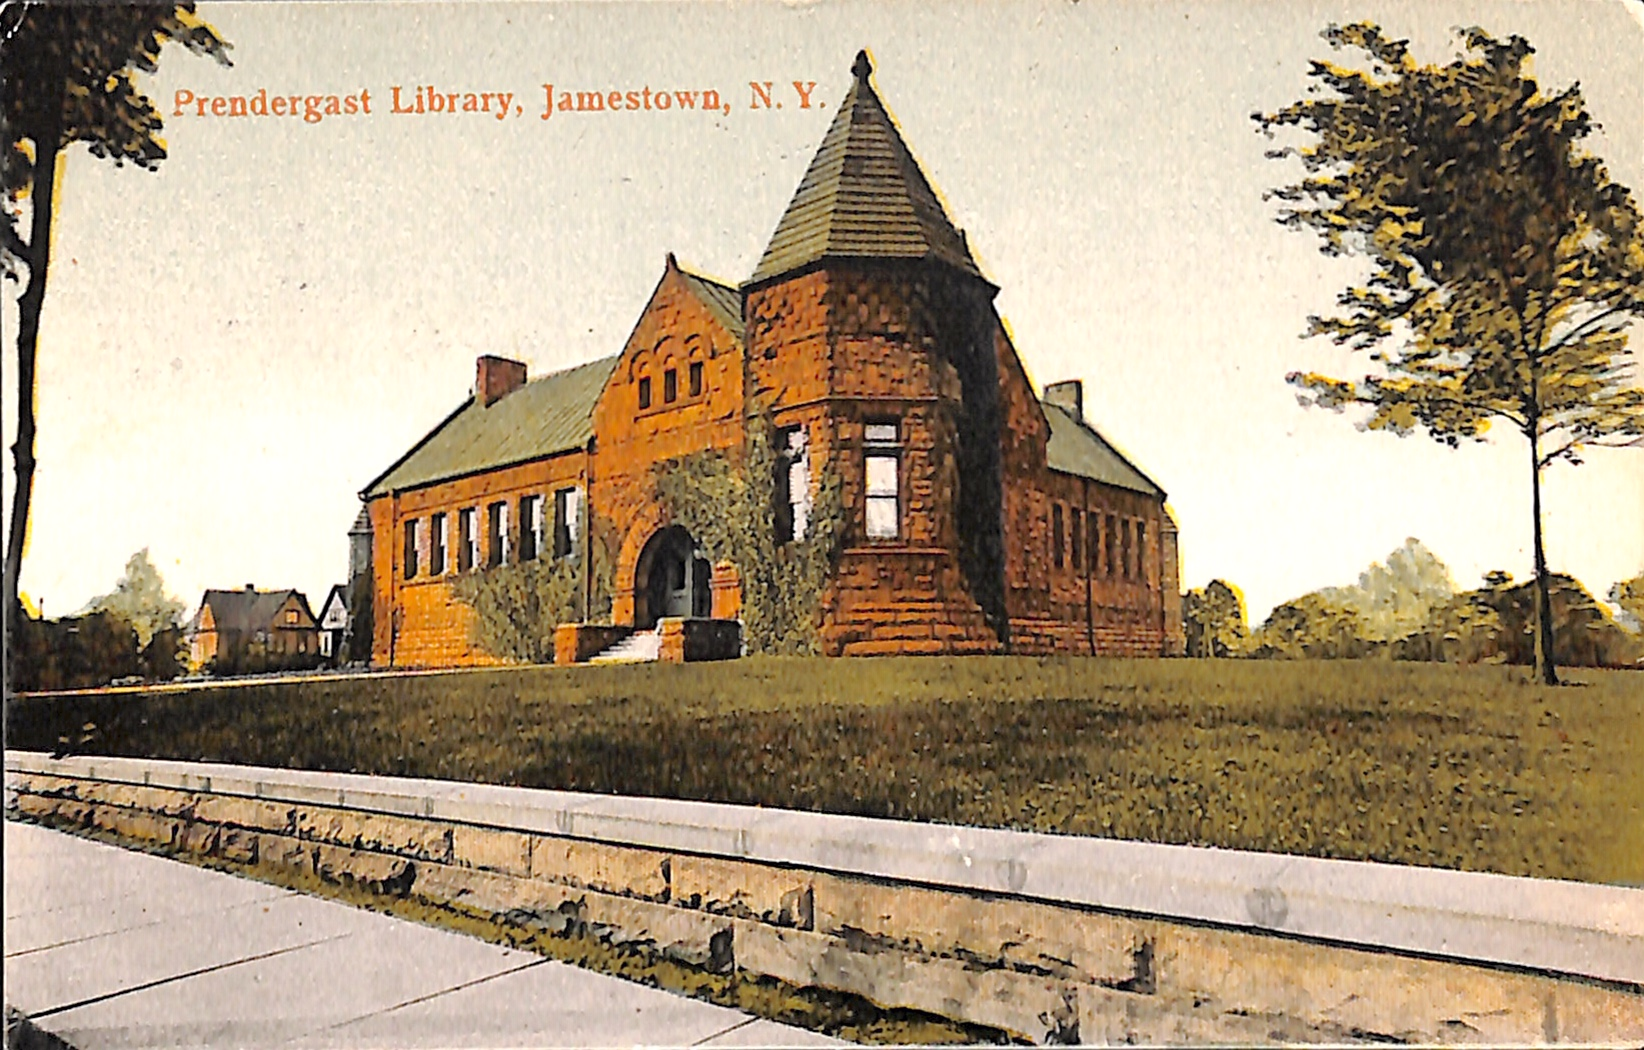 An early 1900s era postcard of the James Prendergast Library facility.